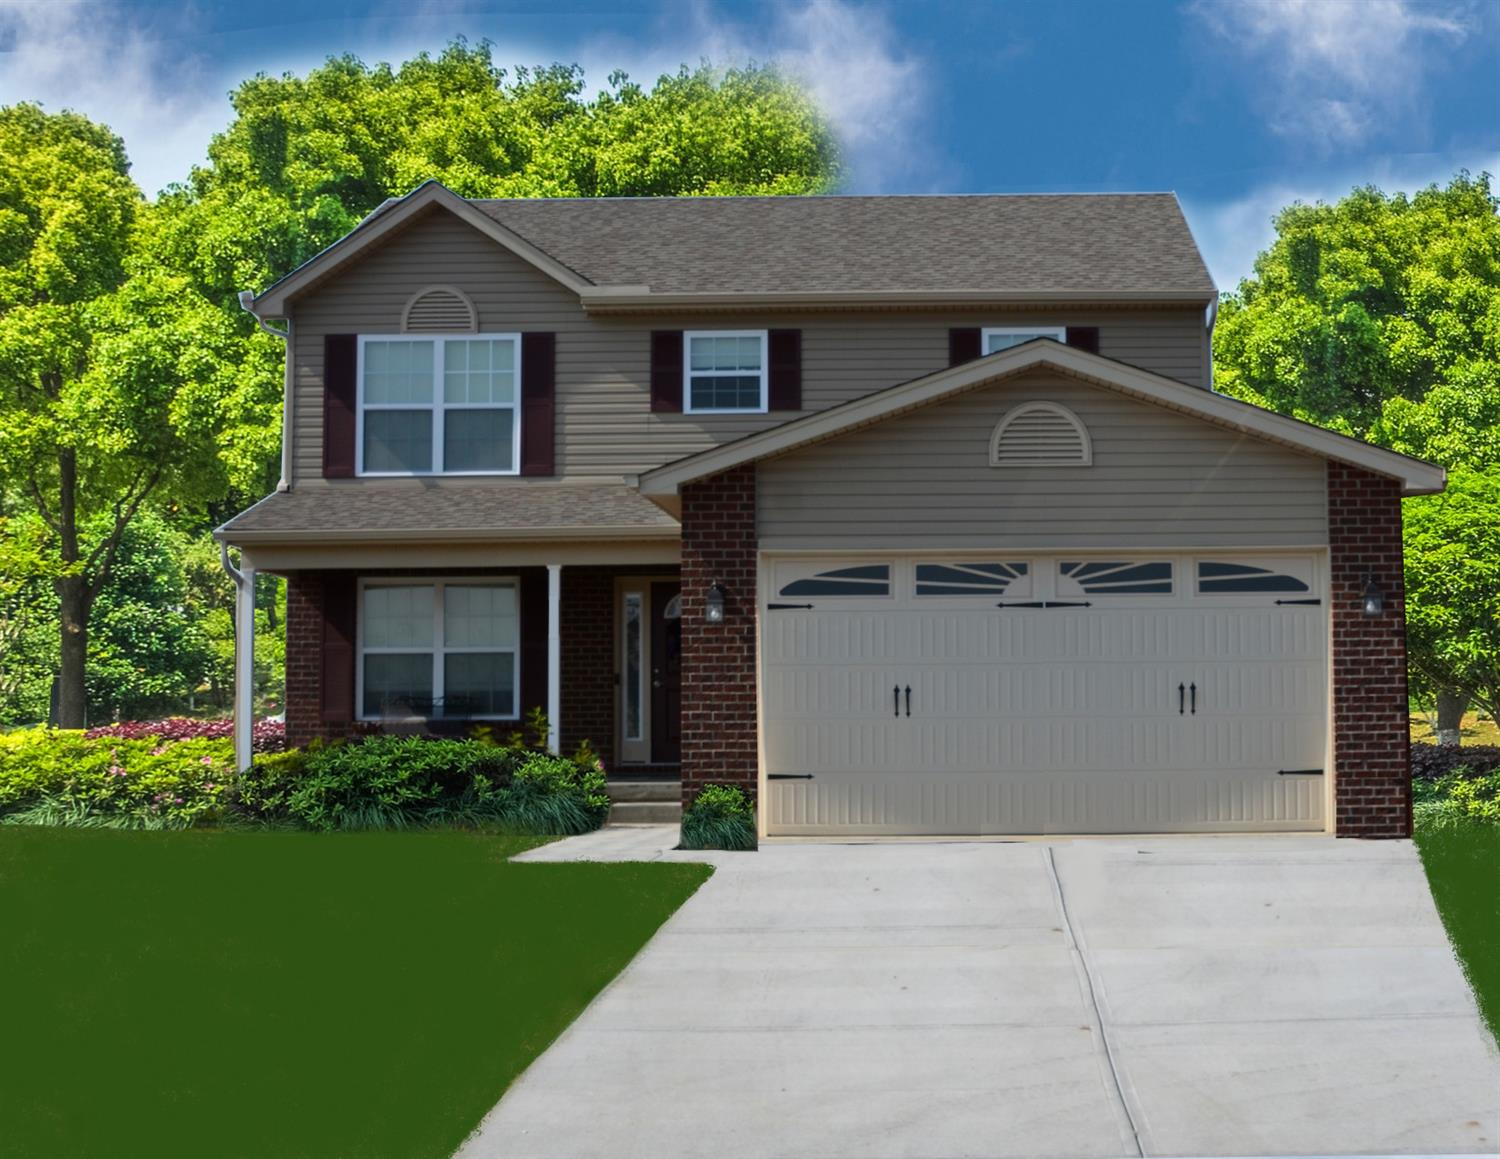 Property for sale at 311 Selkirk Place, Trenton,  Ohio 45067